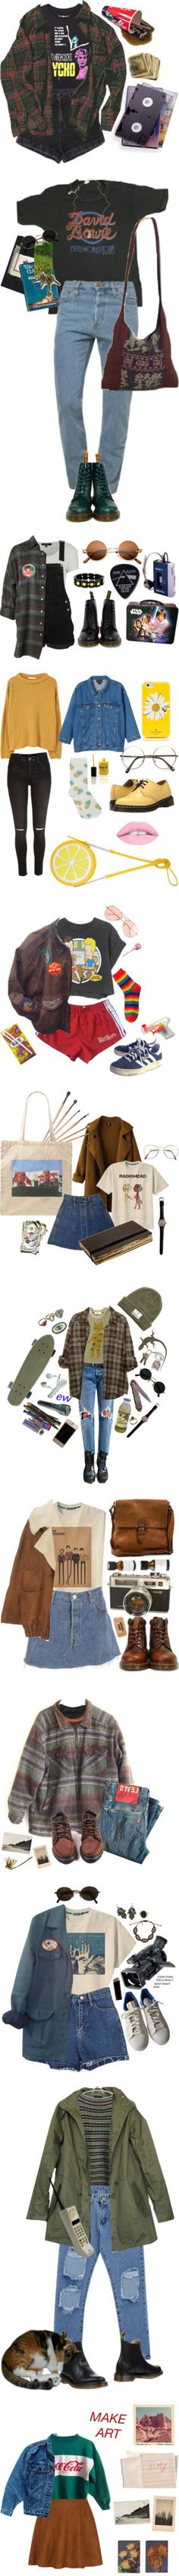 Please by kickflippindoge on Polyvore featuring 21 Men, Zimmermann, American Apparel, Dr. Martens, Moleskine, Jessica de Lotz Jewellery, Topshop, Episode, Floyd and grunge